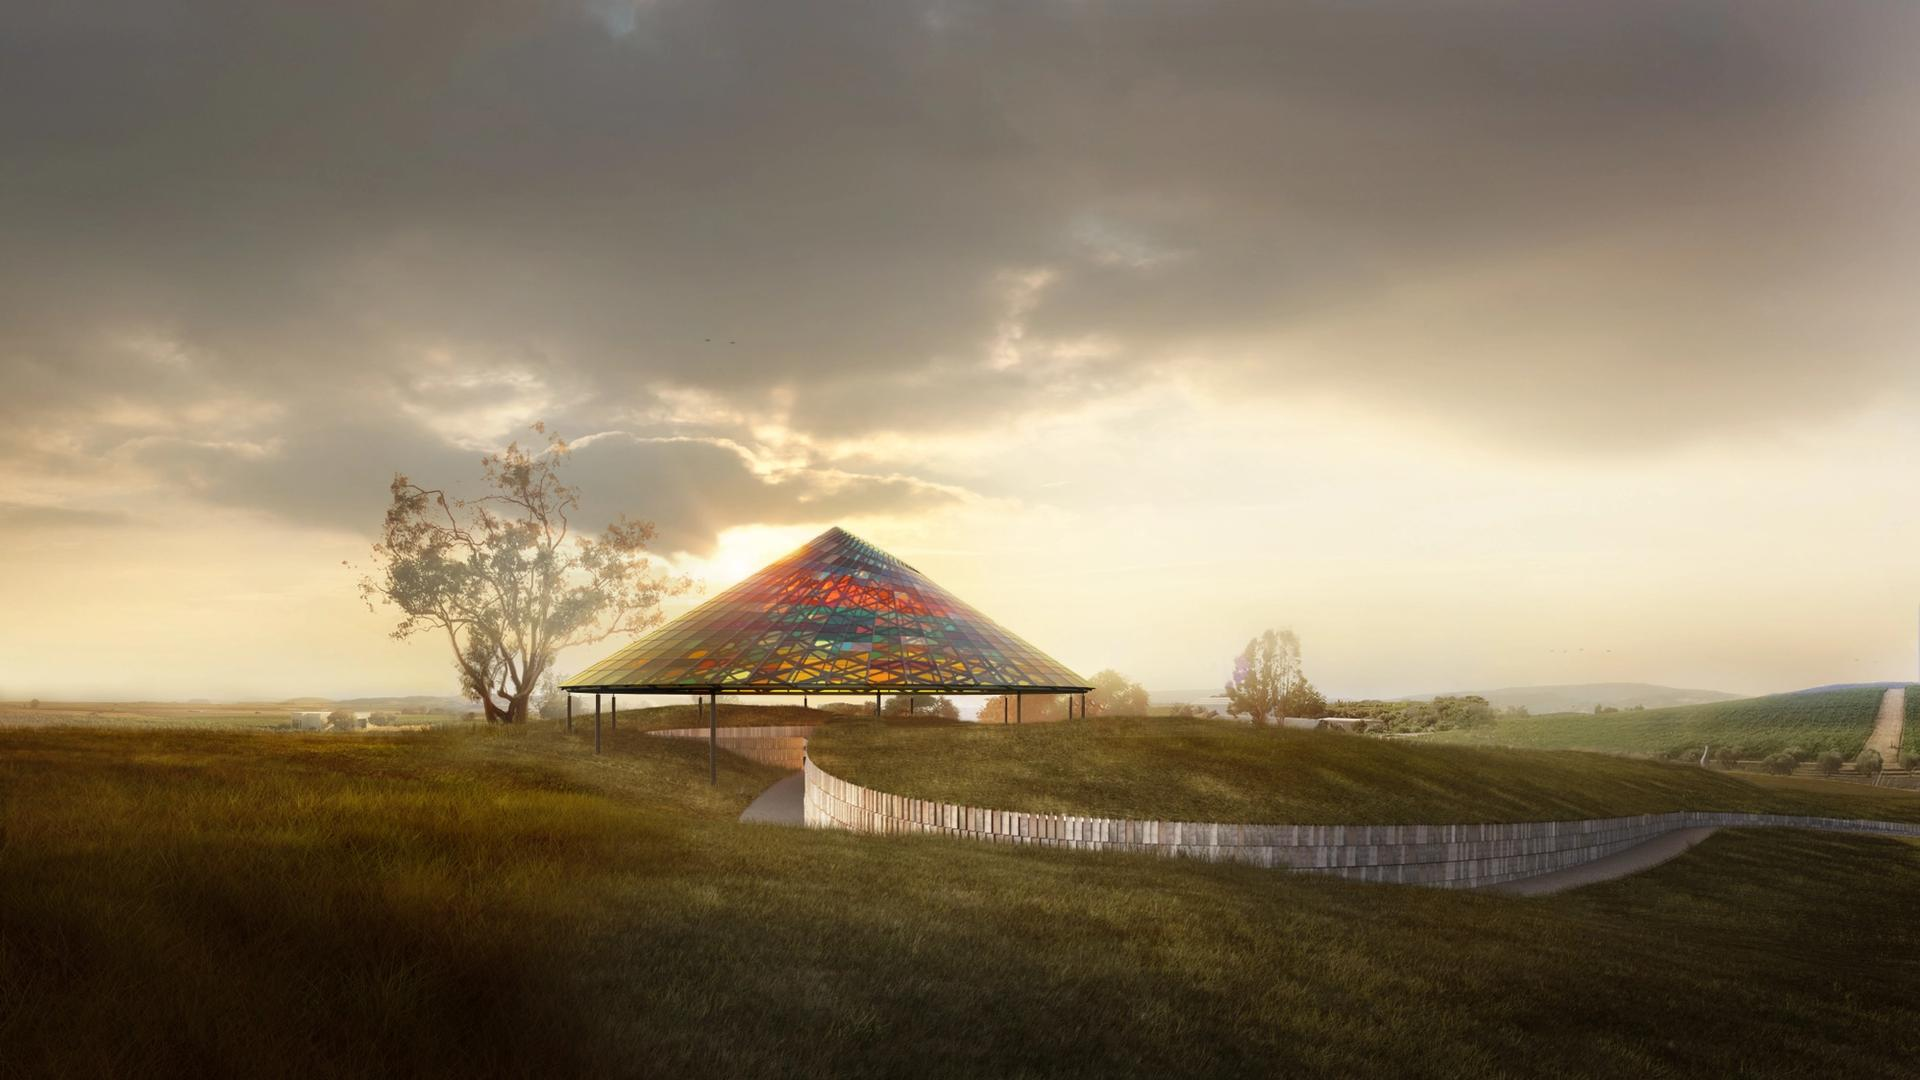 Rendering of the new wine-tasting pavilion © The Donum Estate and Studio Other Spaces